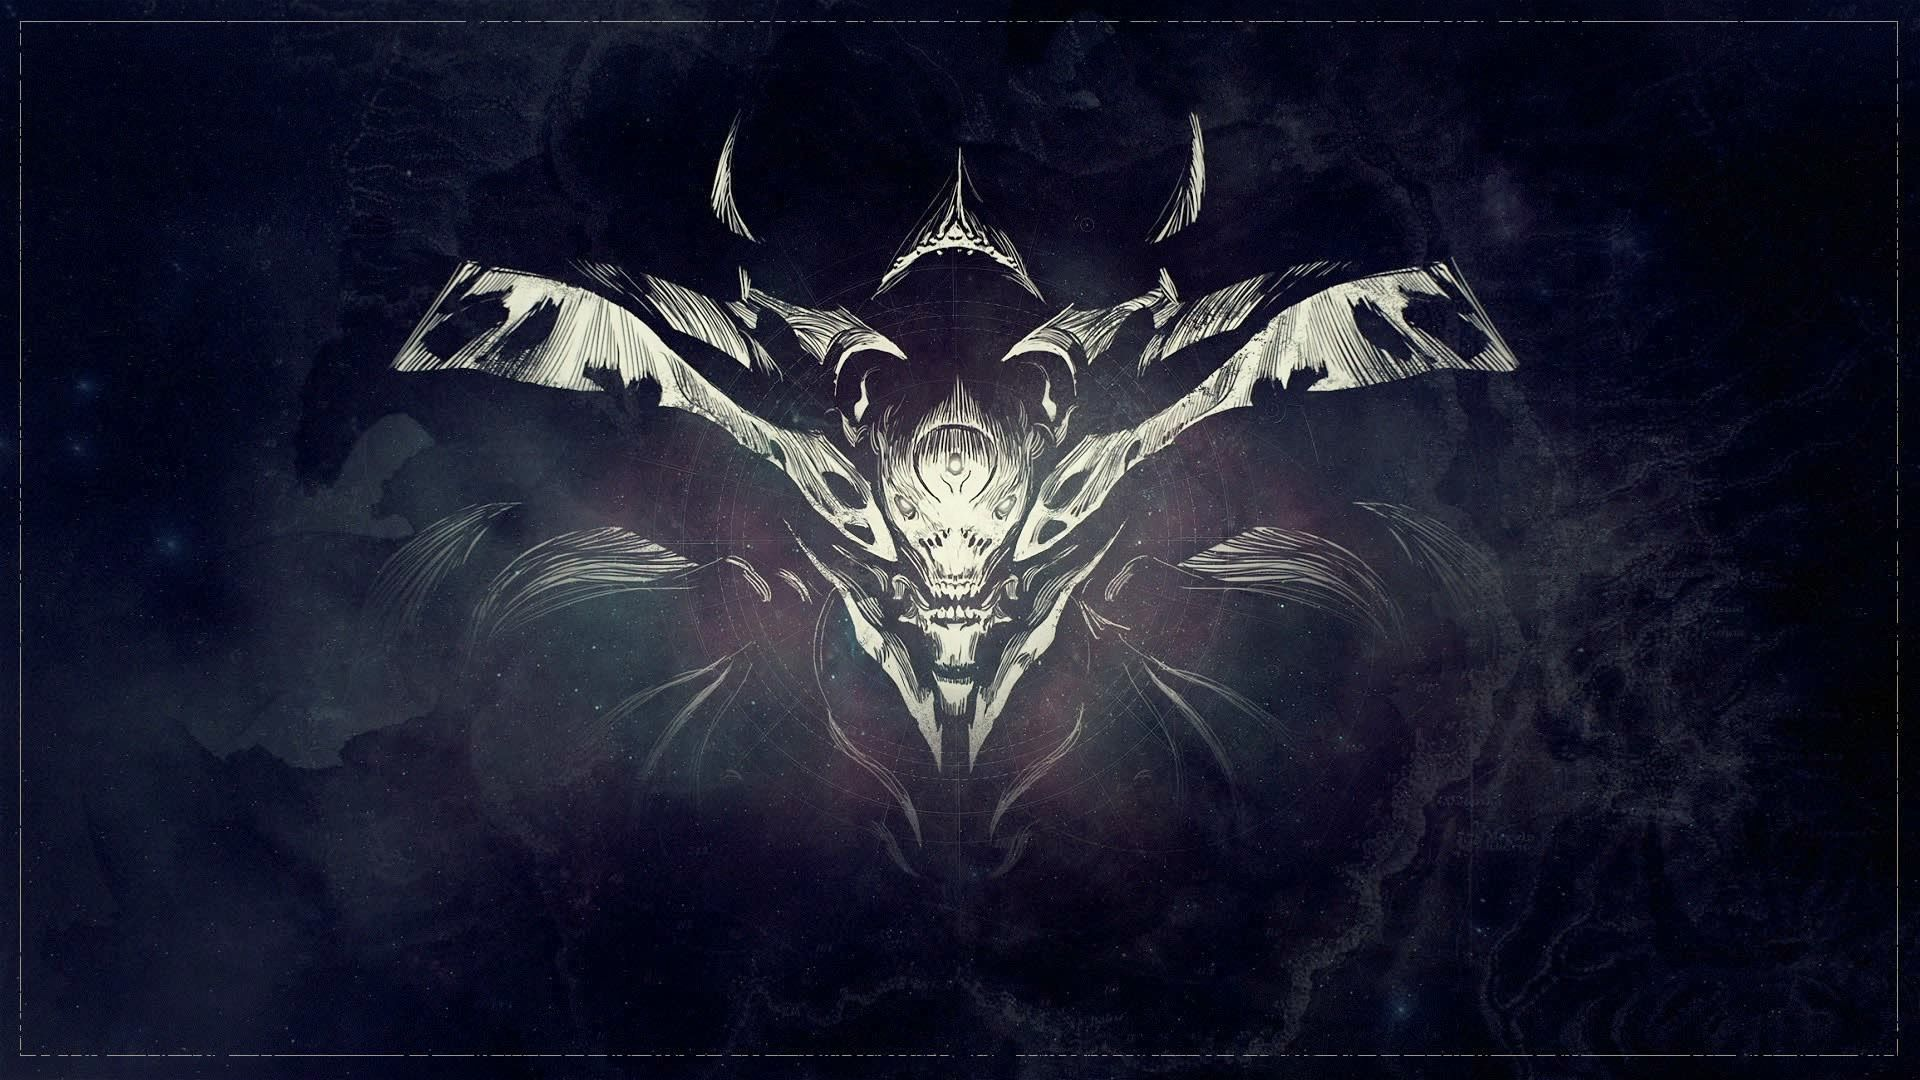 destiny wallpapers collection for free download hd wallpapers